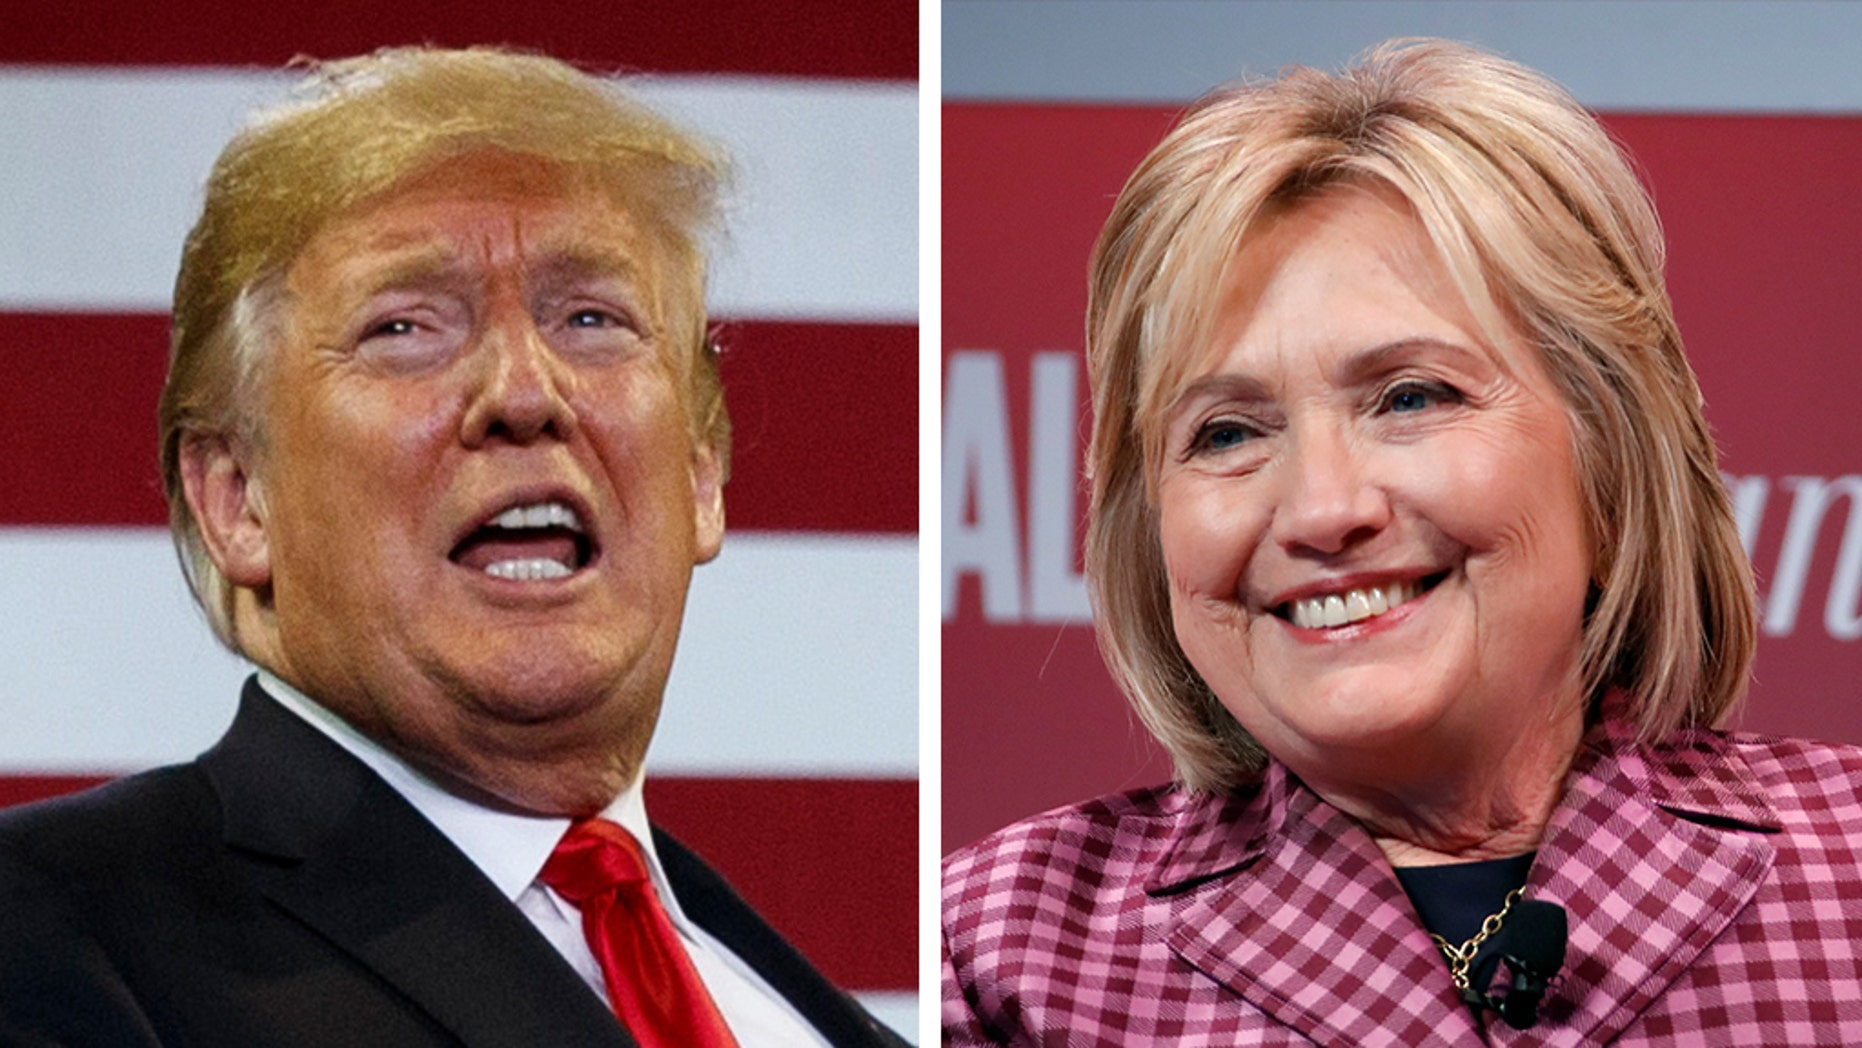 Former presidential candidate Hillary Clinton on Thursday fired back at claims made a day earlier by President Trump during his campaign stop.